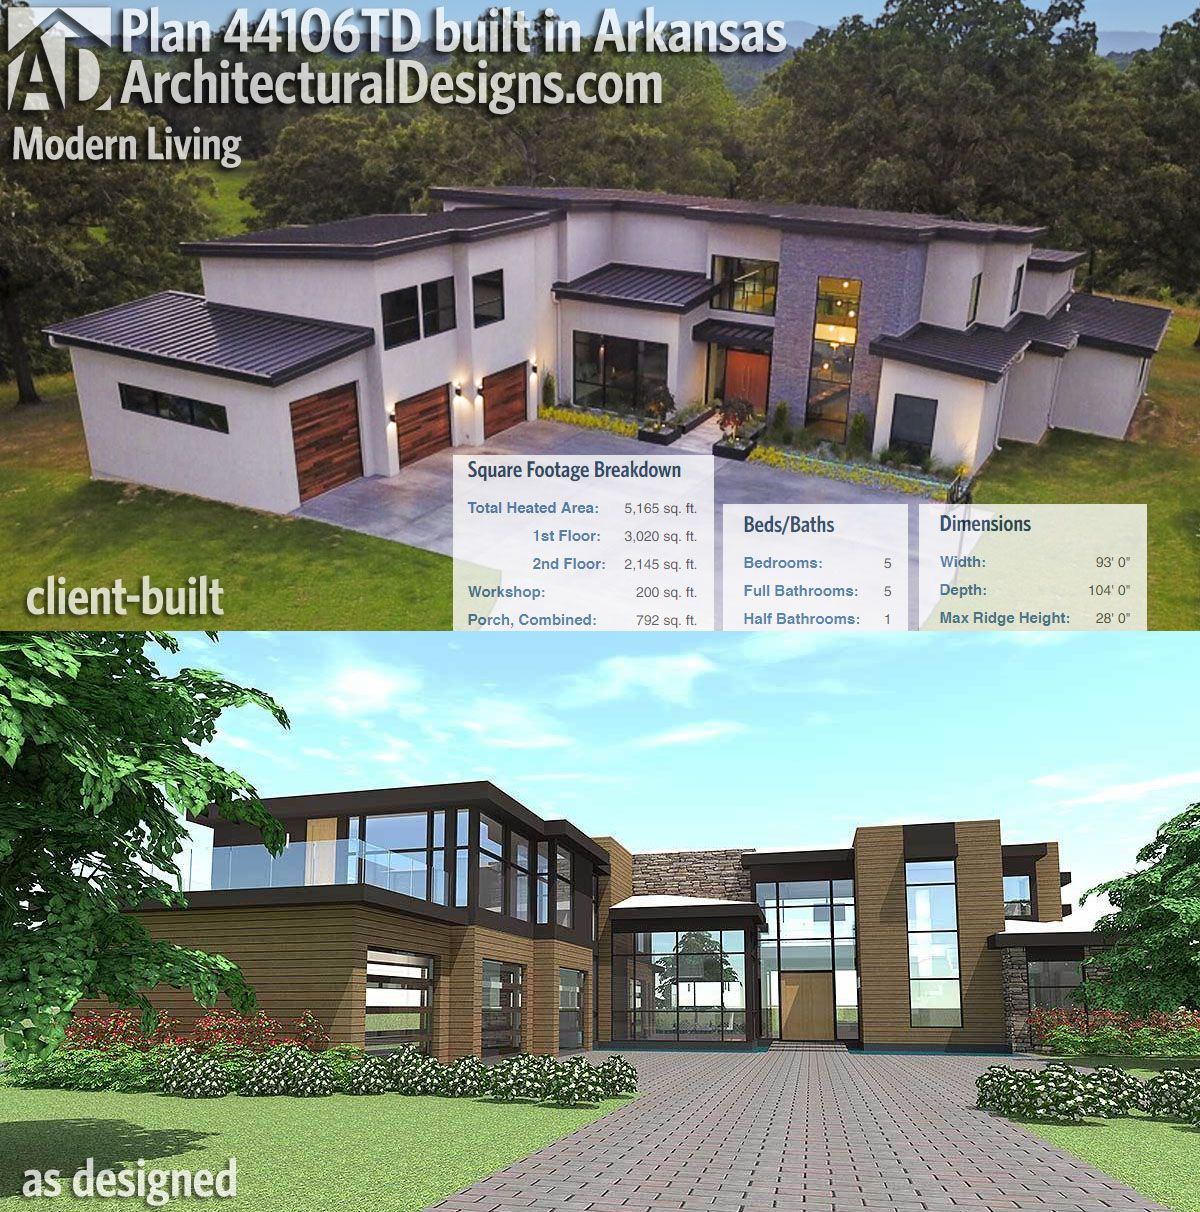 Plan 44106td modern living maisons for 5000 sq ft home